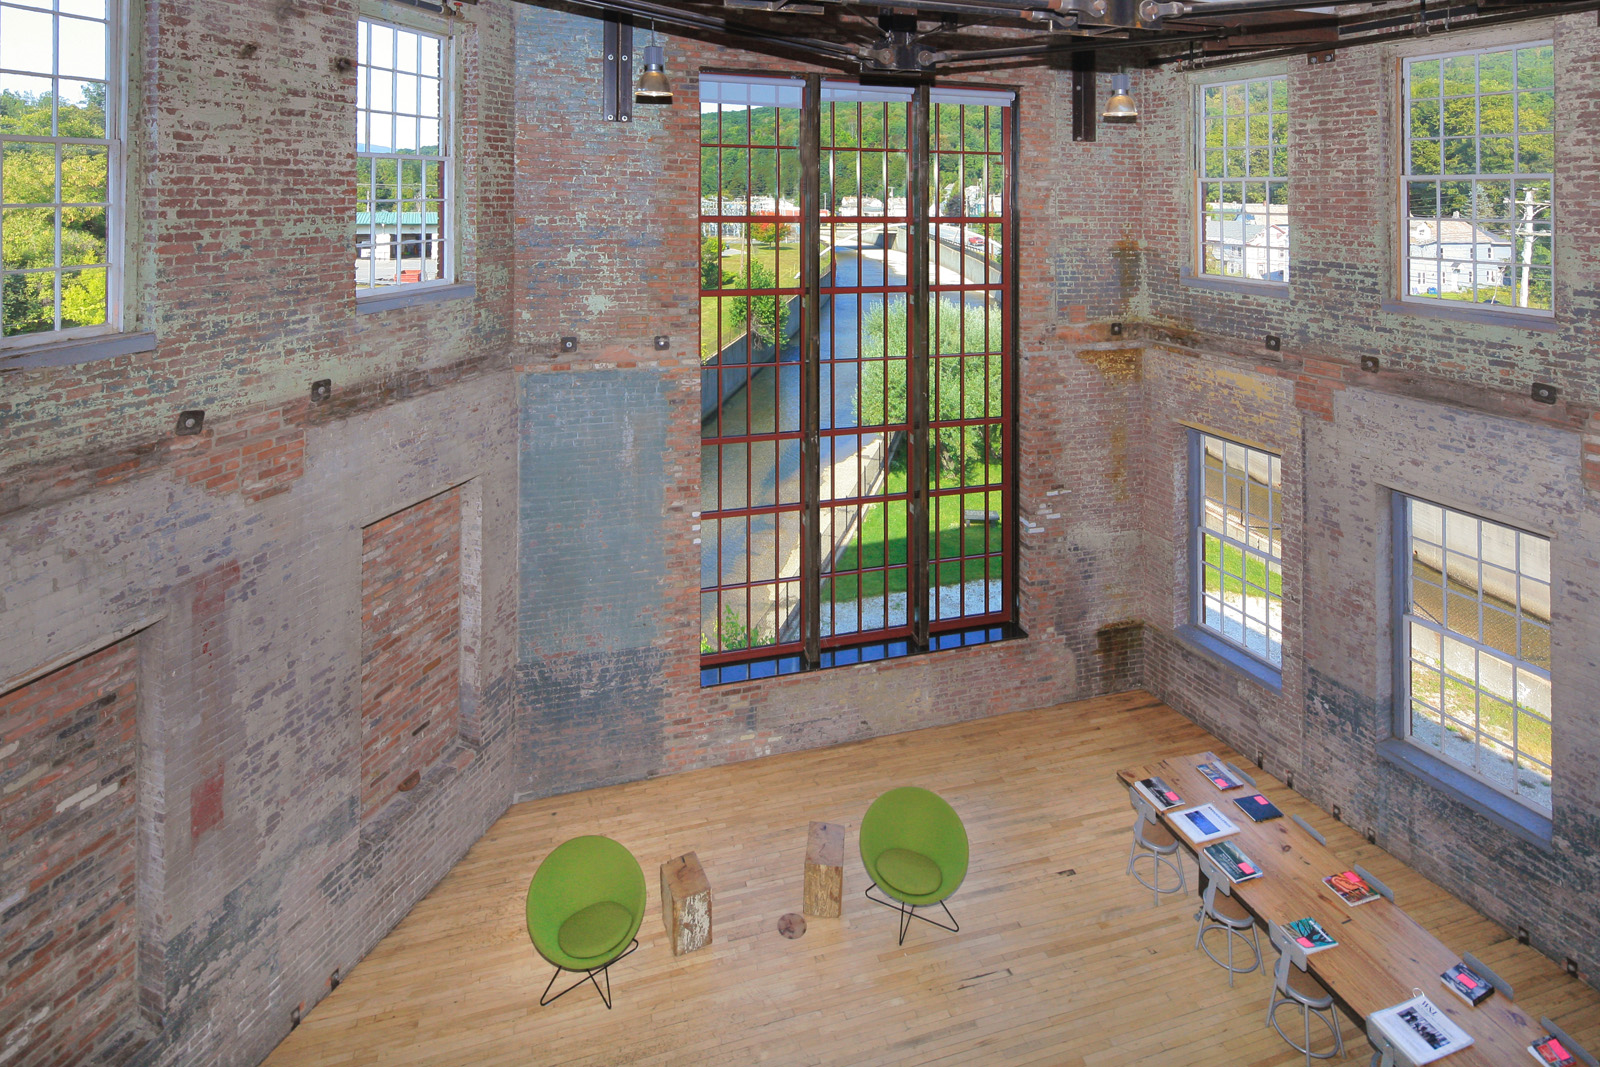 Mass Moca Becomes The Country S Largest Contemporary Art